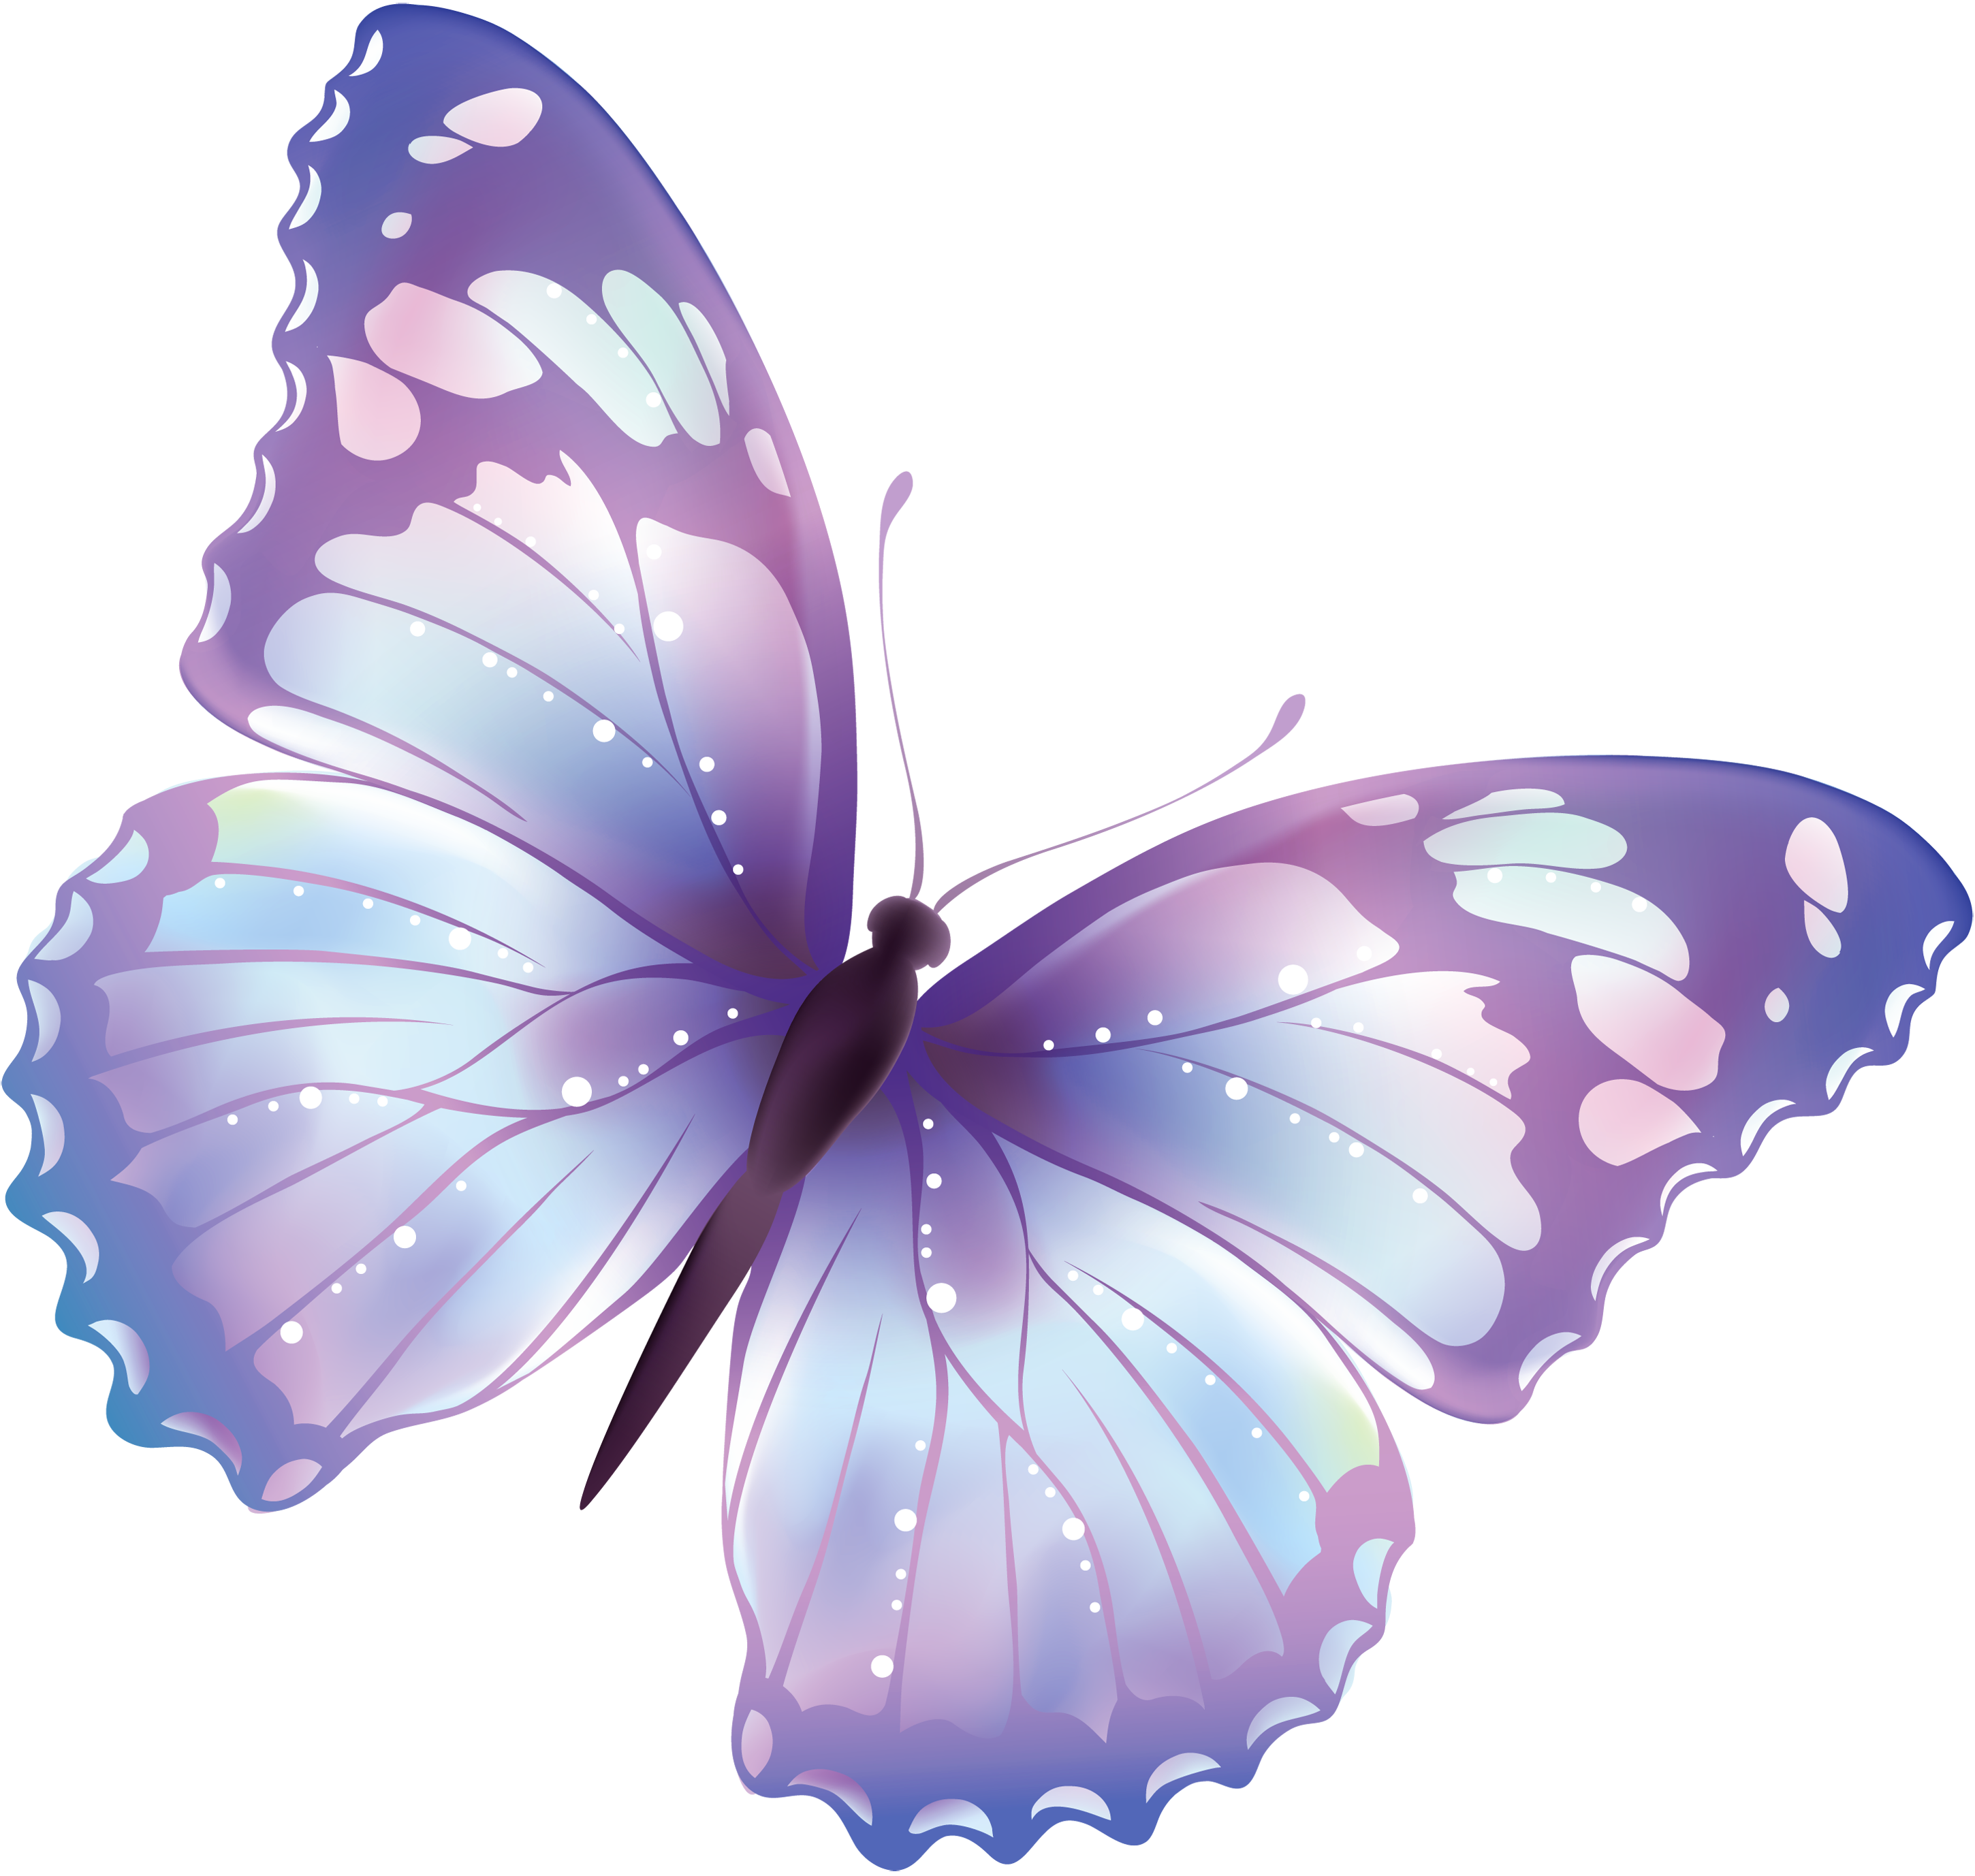 Transparent background butterfly clipart png svg free download Pin by Anne Van Riper on aleah butterflies | Butterfly clip ... svg free download